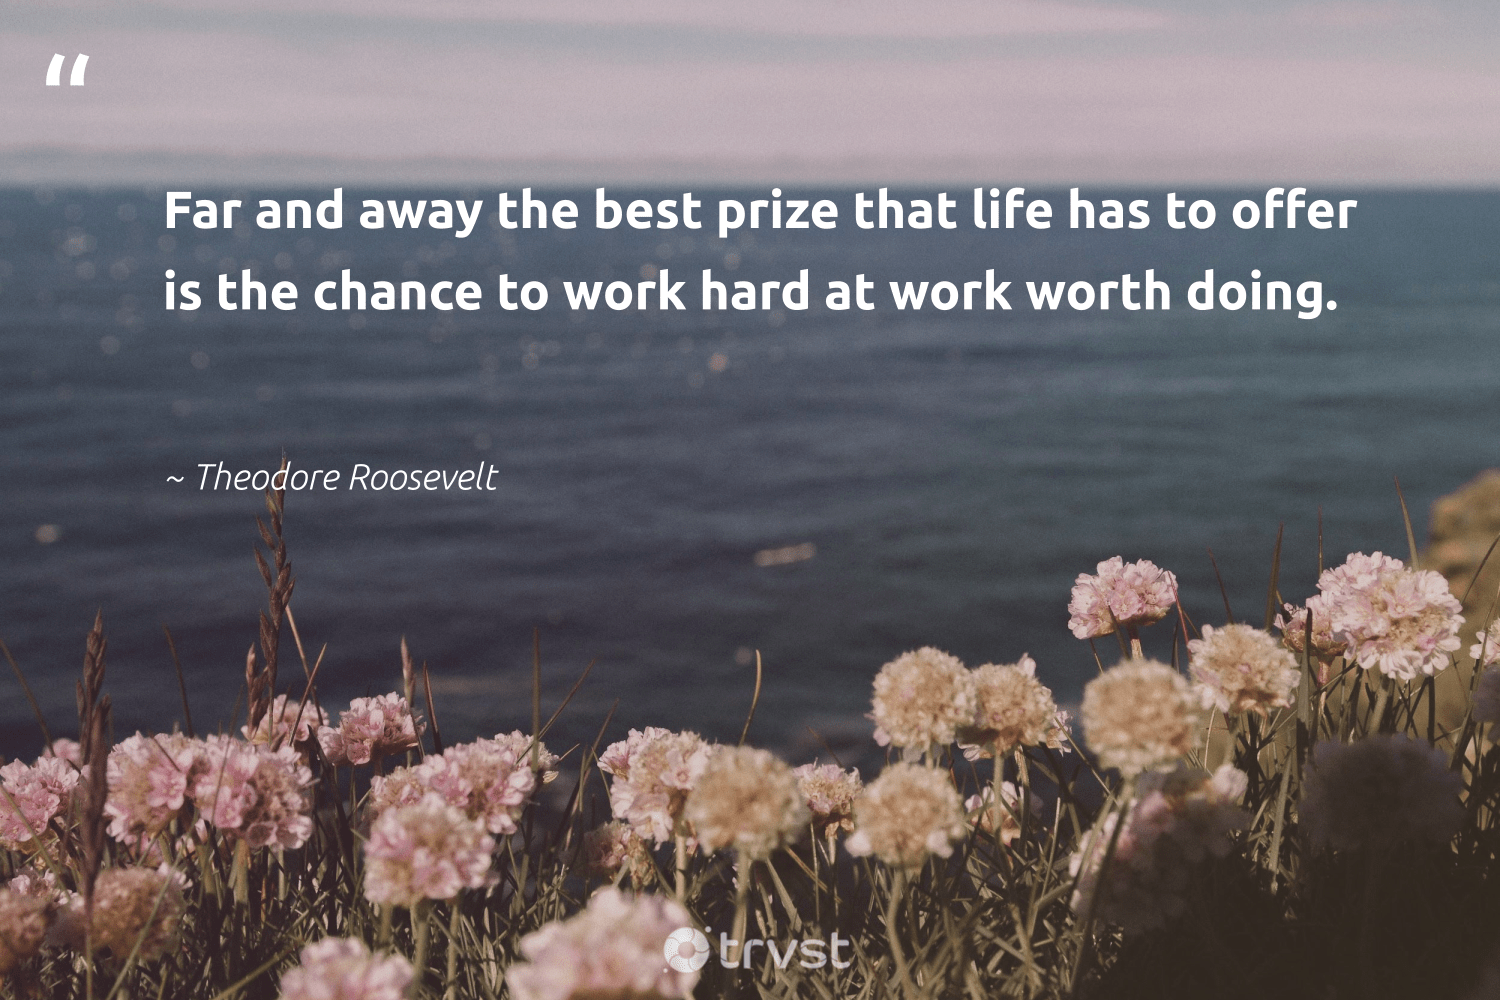 """""""Far and away the best prize that life has to offer is the chance to work hard at work worth doing.""""  - Theodore Roosevelt #trvst #quotes #softskills #collectiveaction #nevergiveup #socialimpact #futureofwork #bethechange #begreat #takeaction #ecoconscious #dogood"""